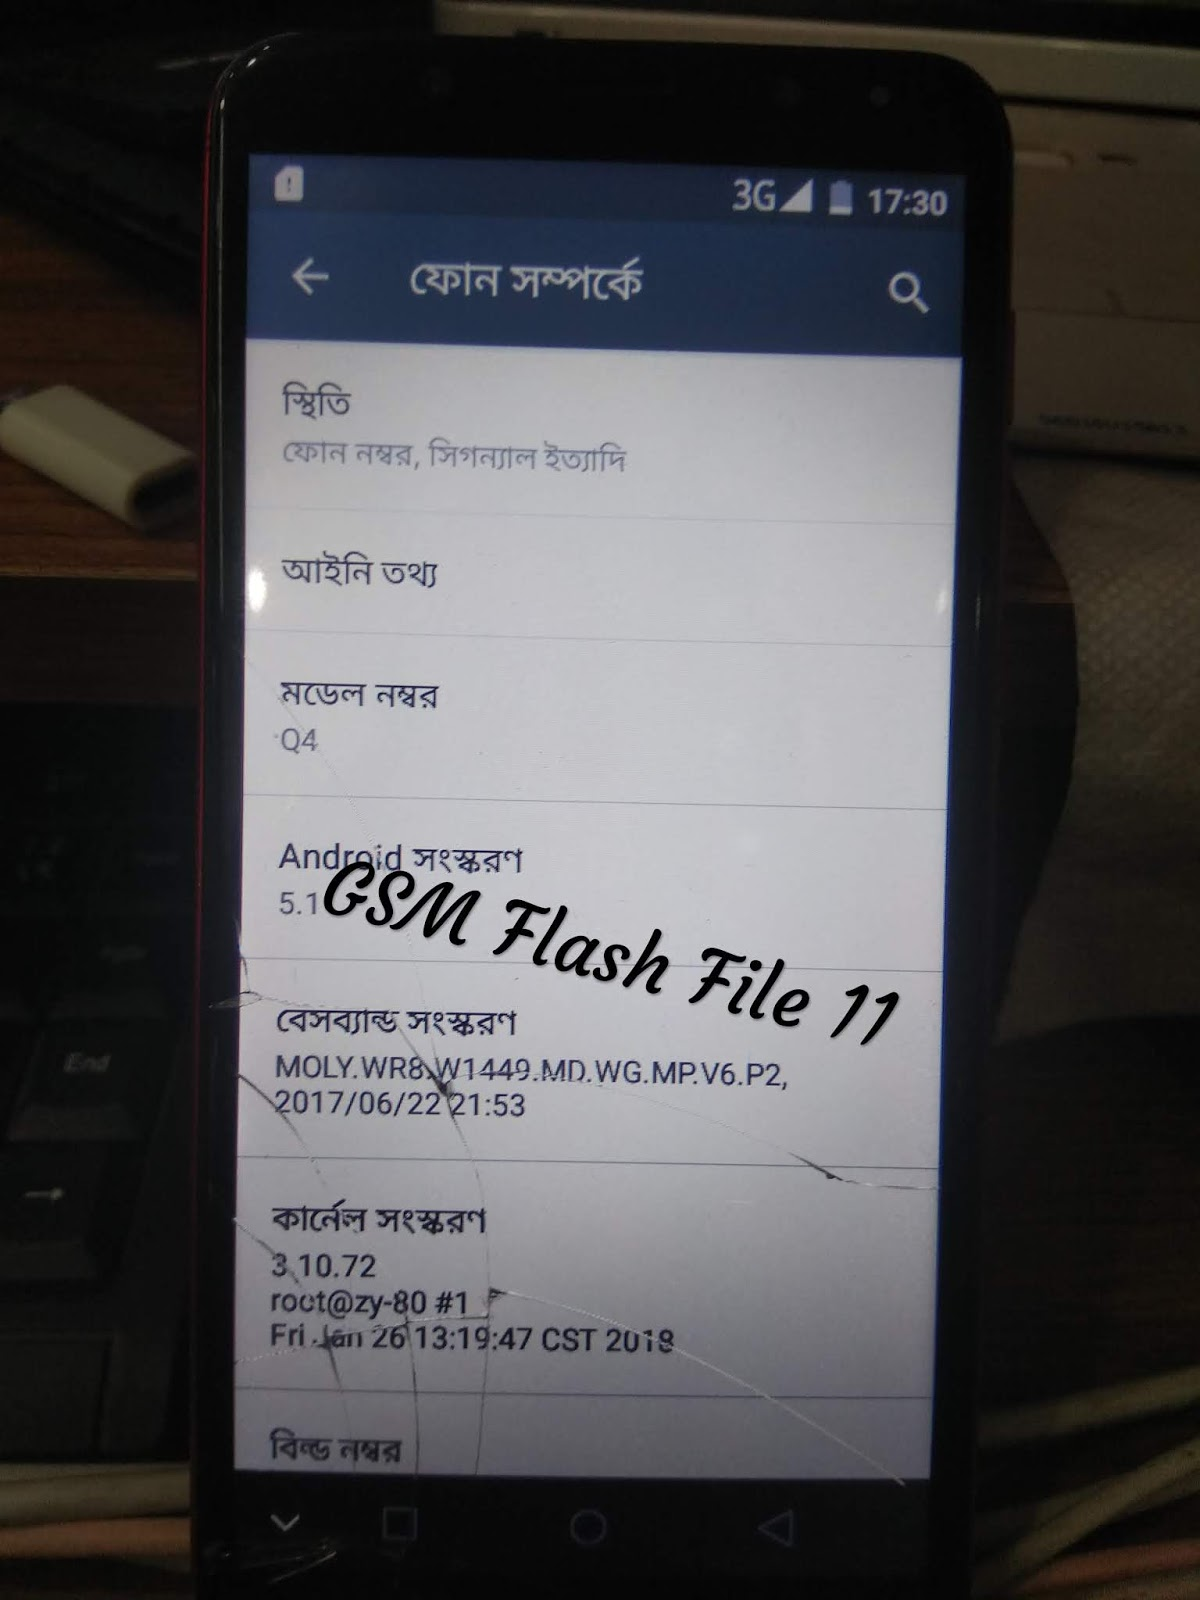 ALPS L1 MP6 V2_YUANDA6580 WE L Flash File BY(gsmflashfile11) No